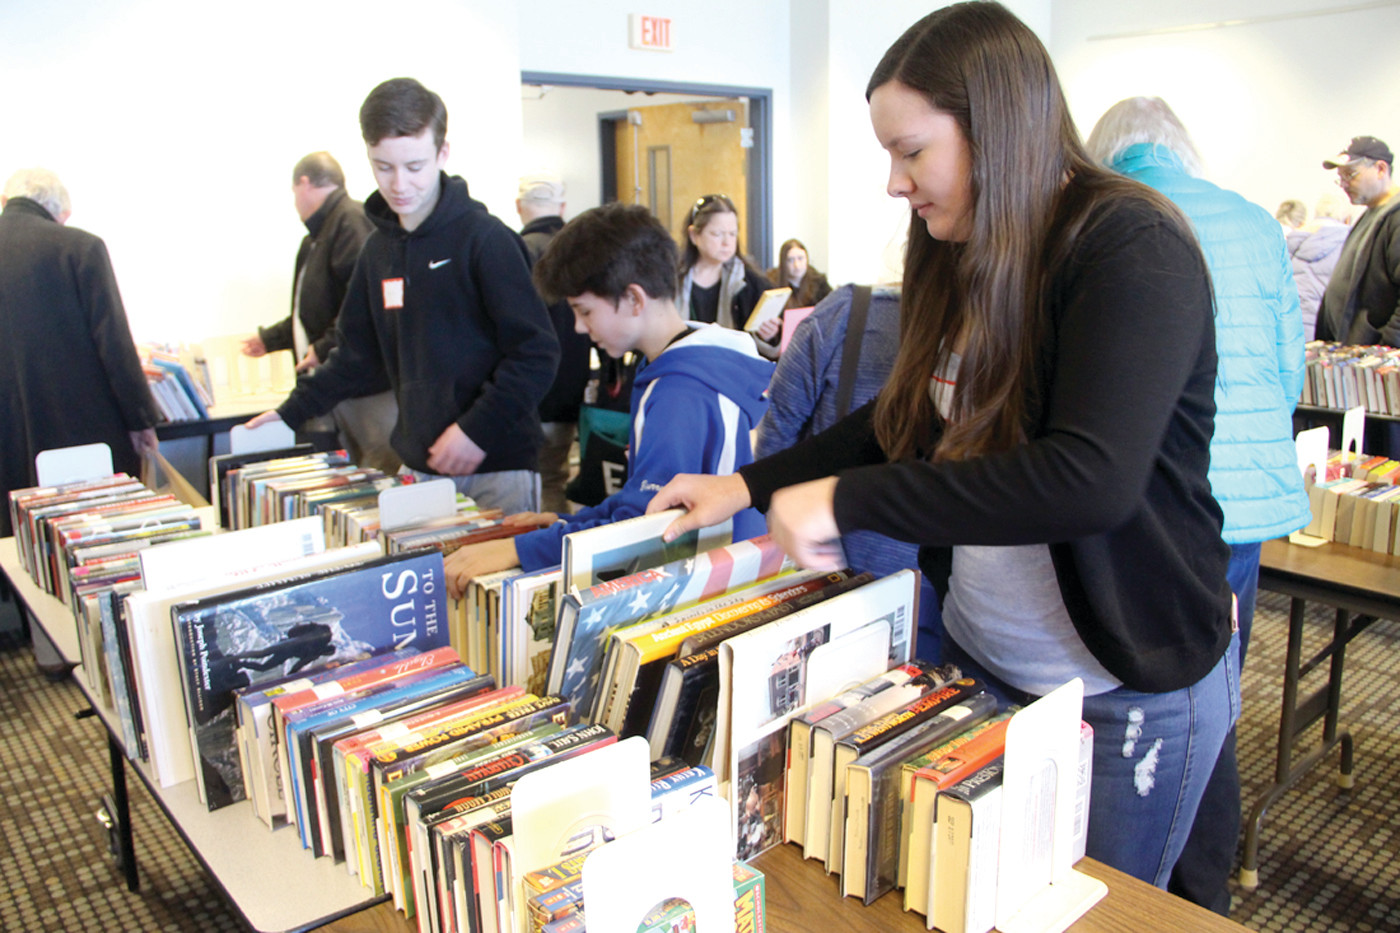 PUTTING IN THE HOURS: Veterans Junior High students Aaron Narcavage, Dylan Bourret and Maddy Narcavage straightened out table displays of hundreds of books, replenishing them as buyers made their selections to fulfill school service hour requirements.